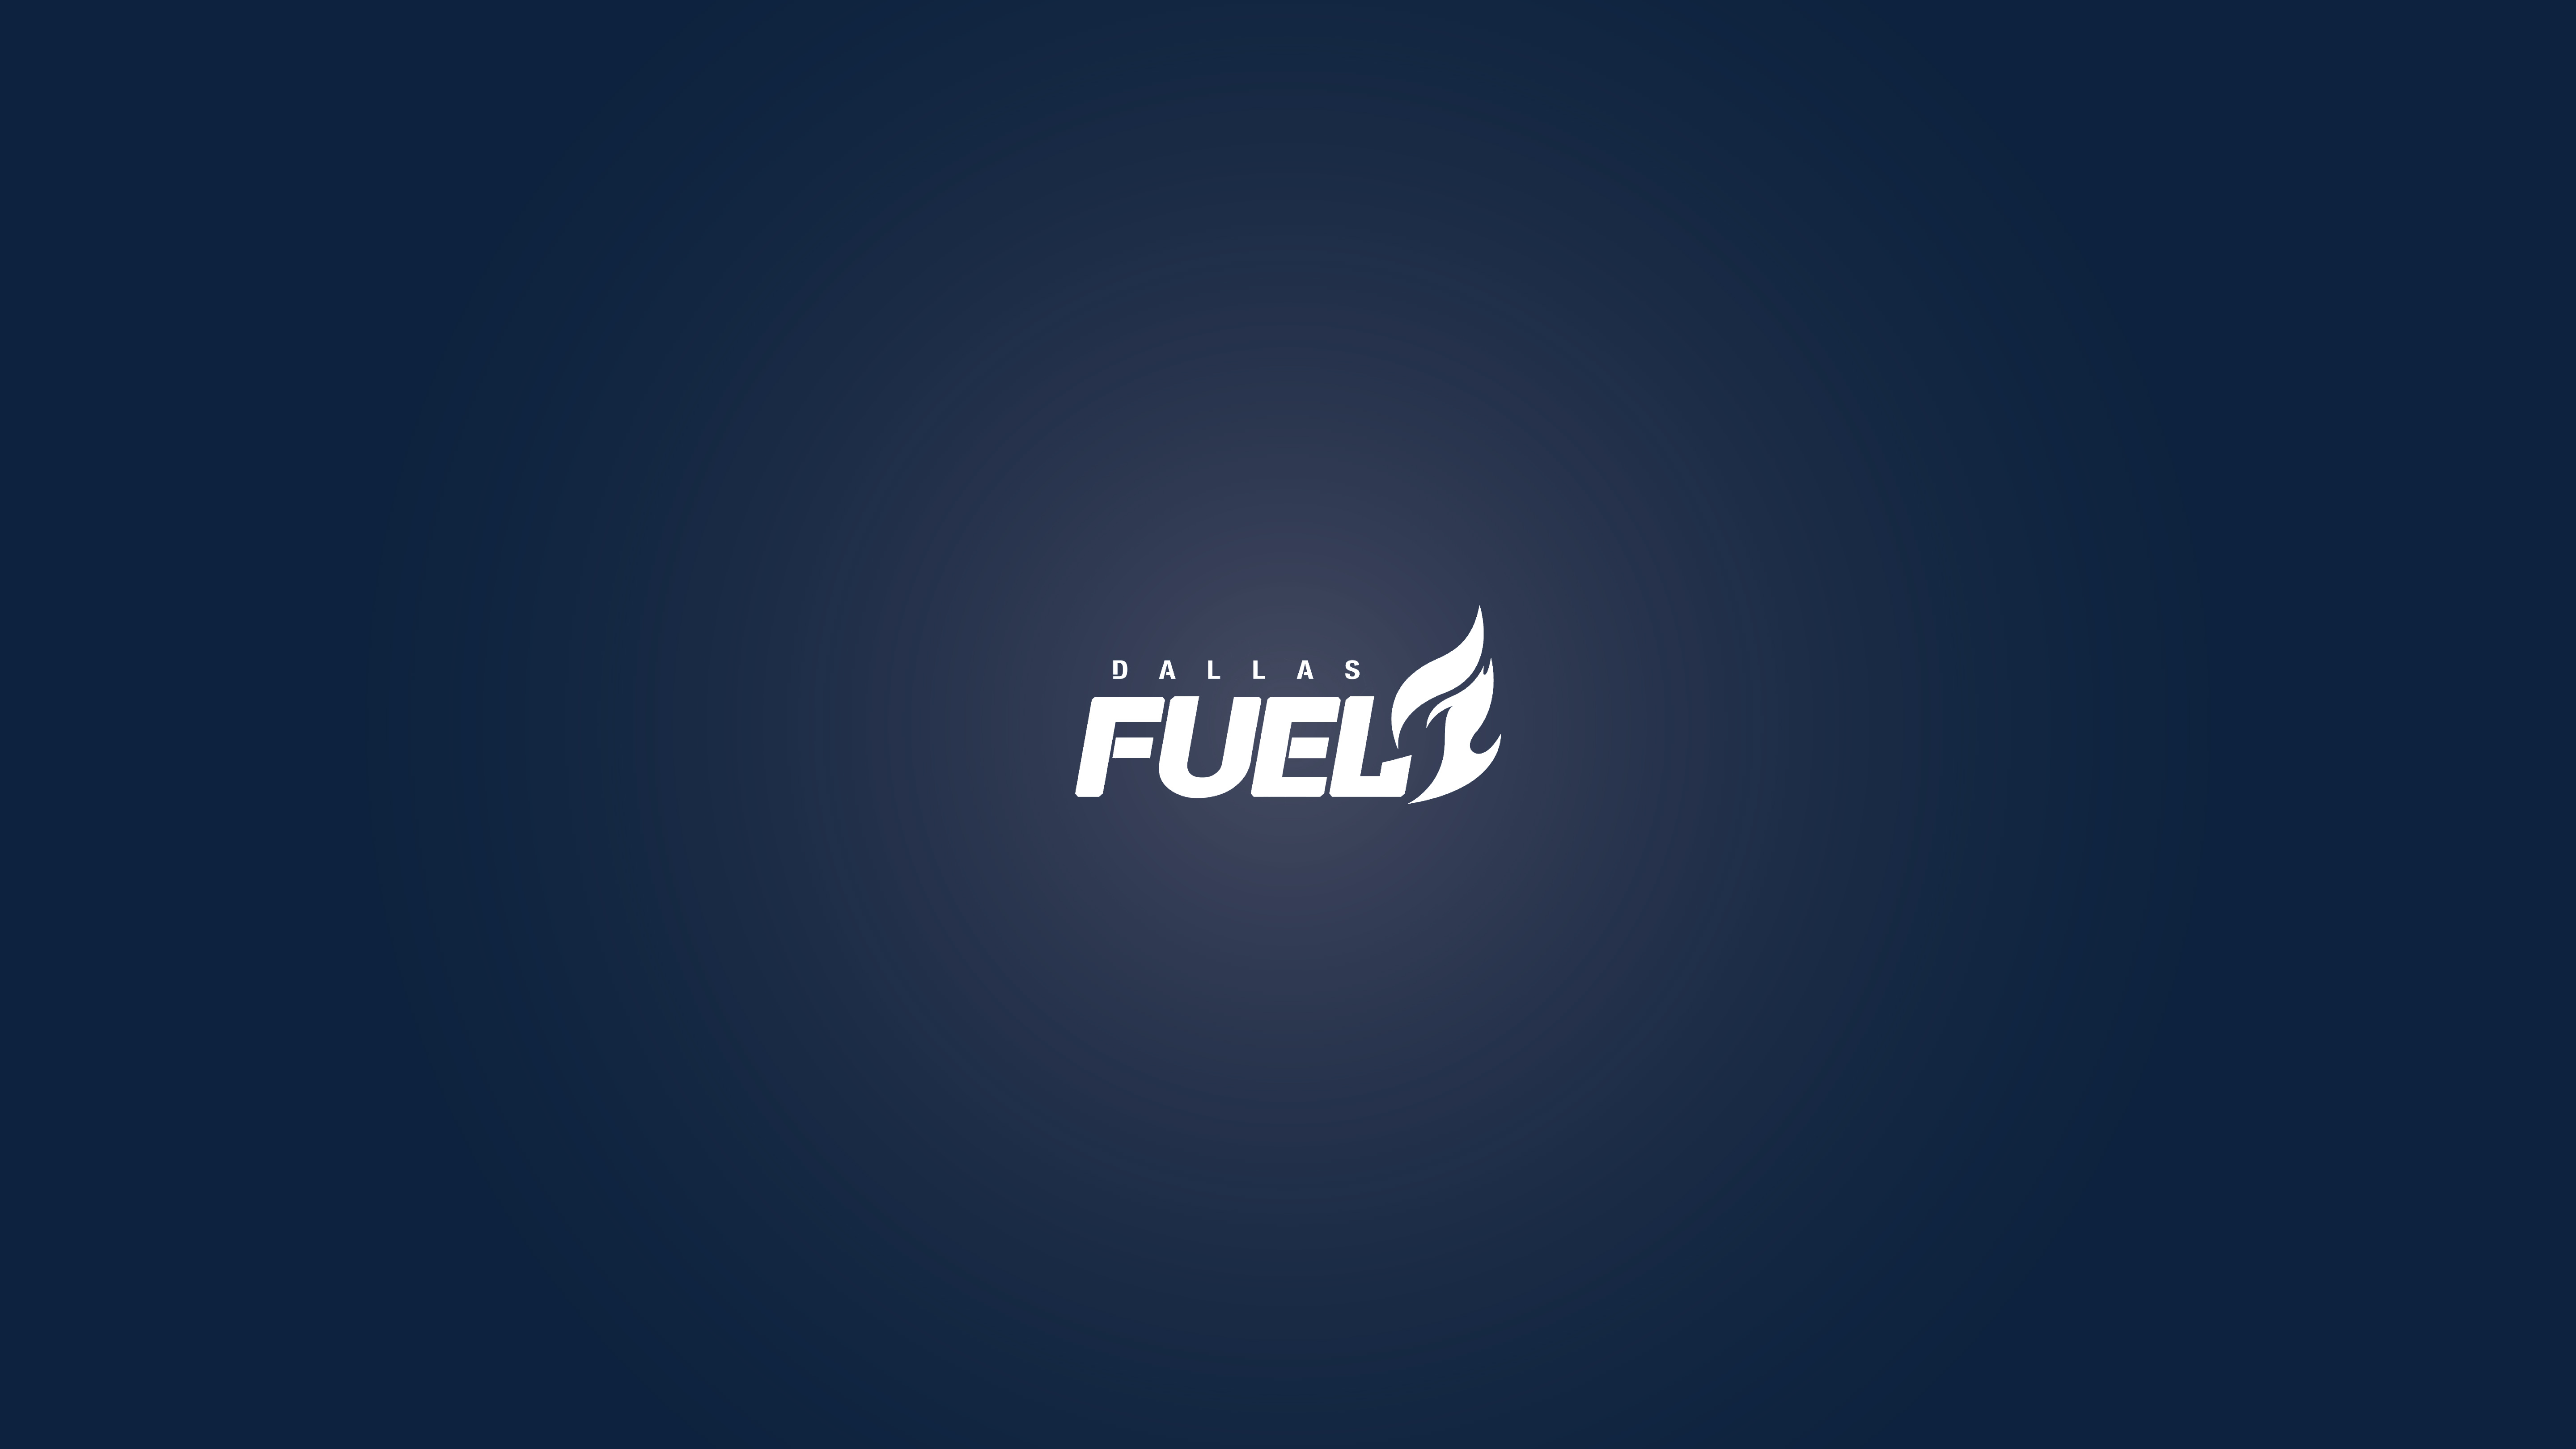 Dallas Fuel Minimalist Wallpaper (Geminispace).